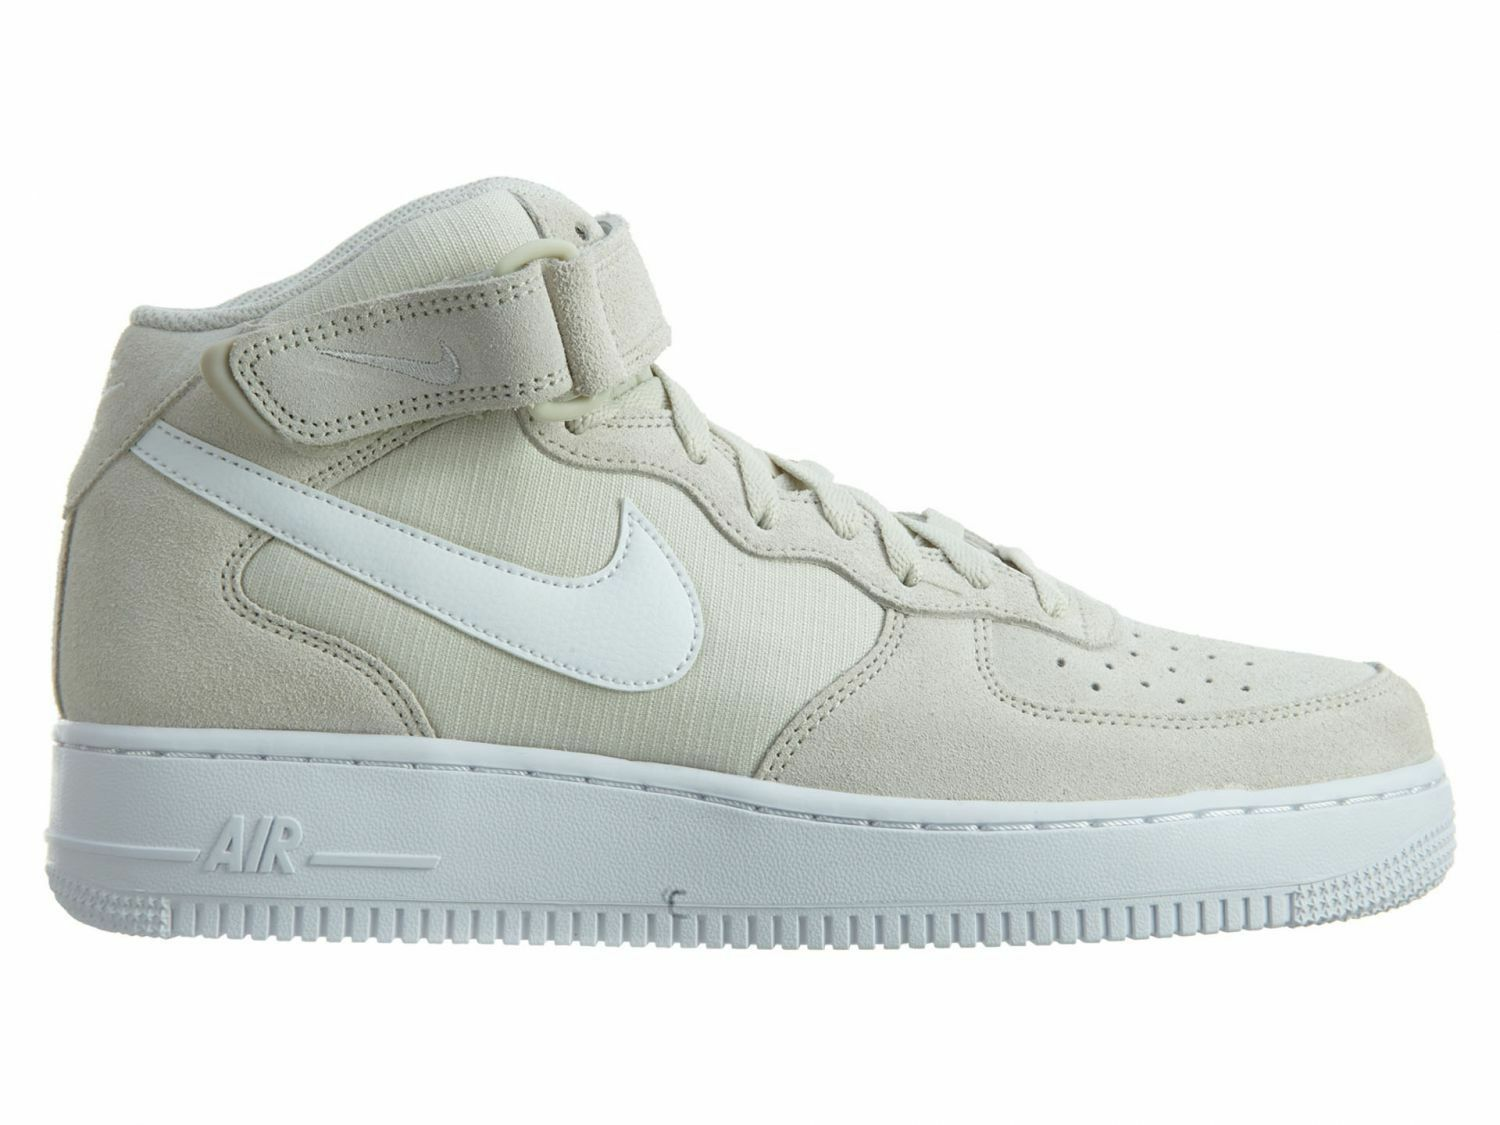 Nike Air Force 1 Mid 07 Mens 315123-034 Light Bone White Shoes Sneakers Size 9